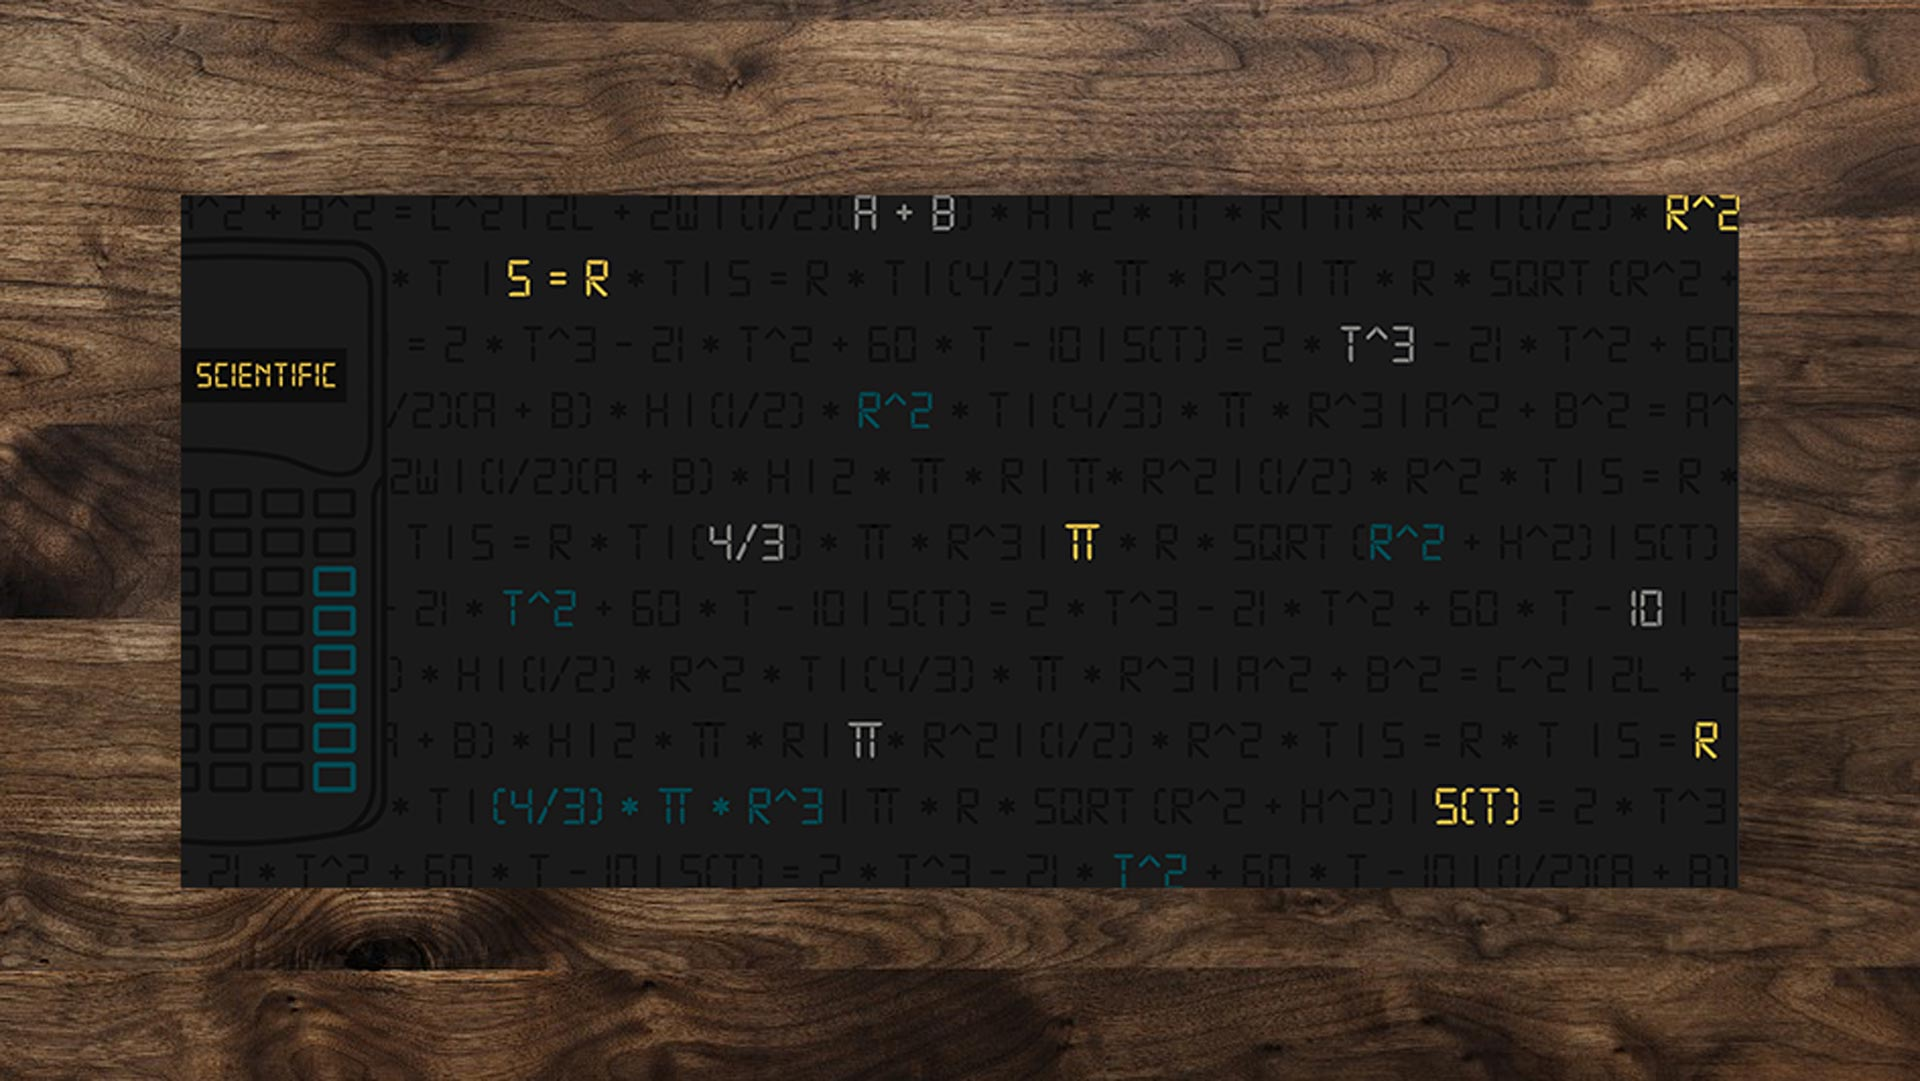 Scientific Deskmat